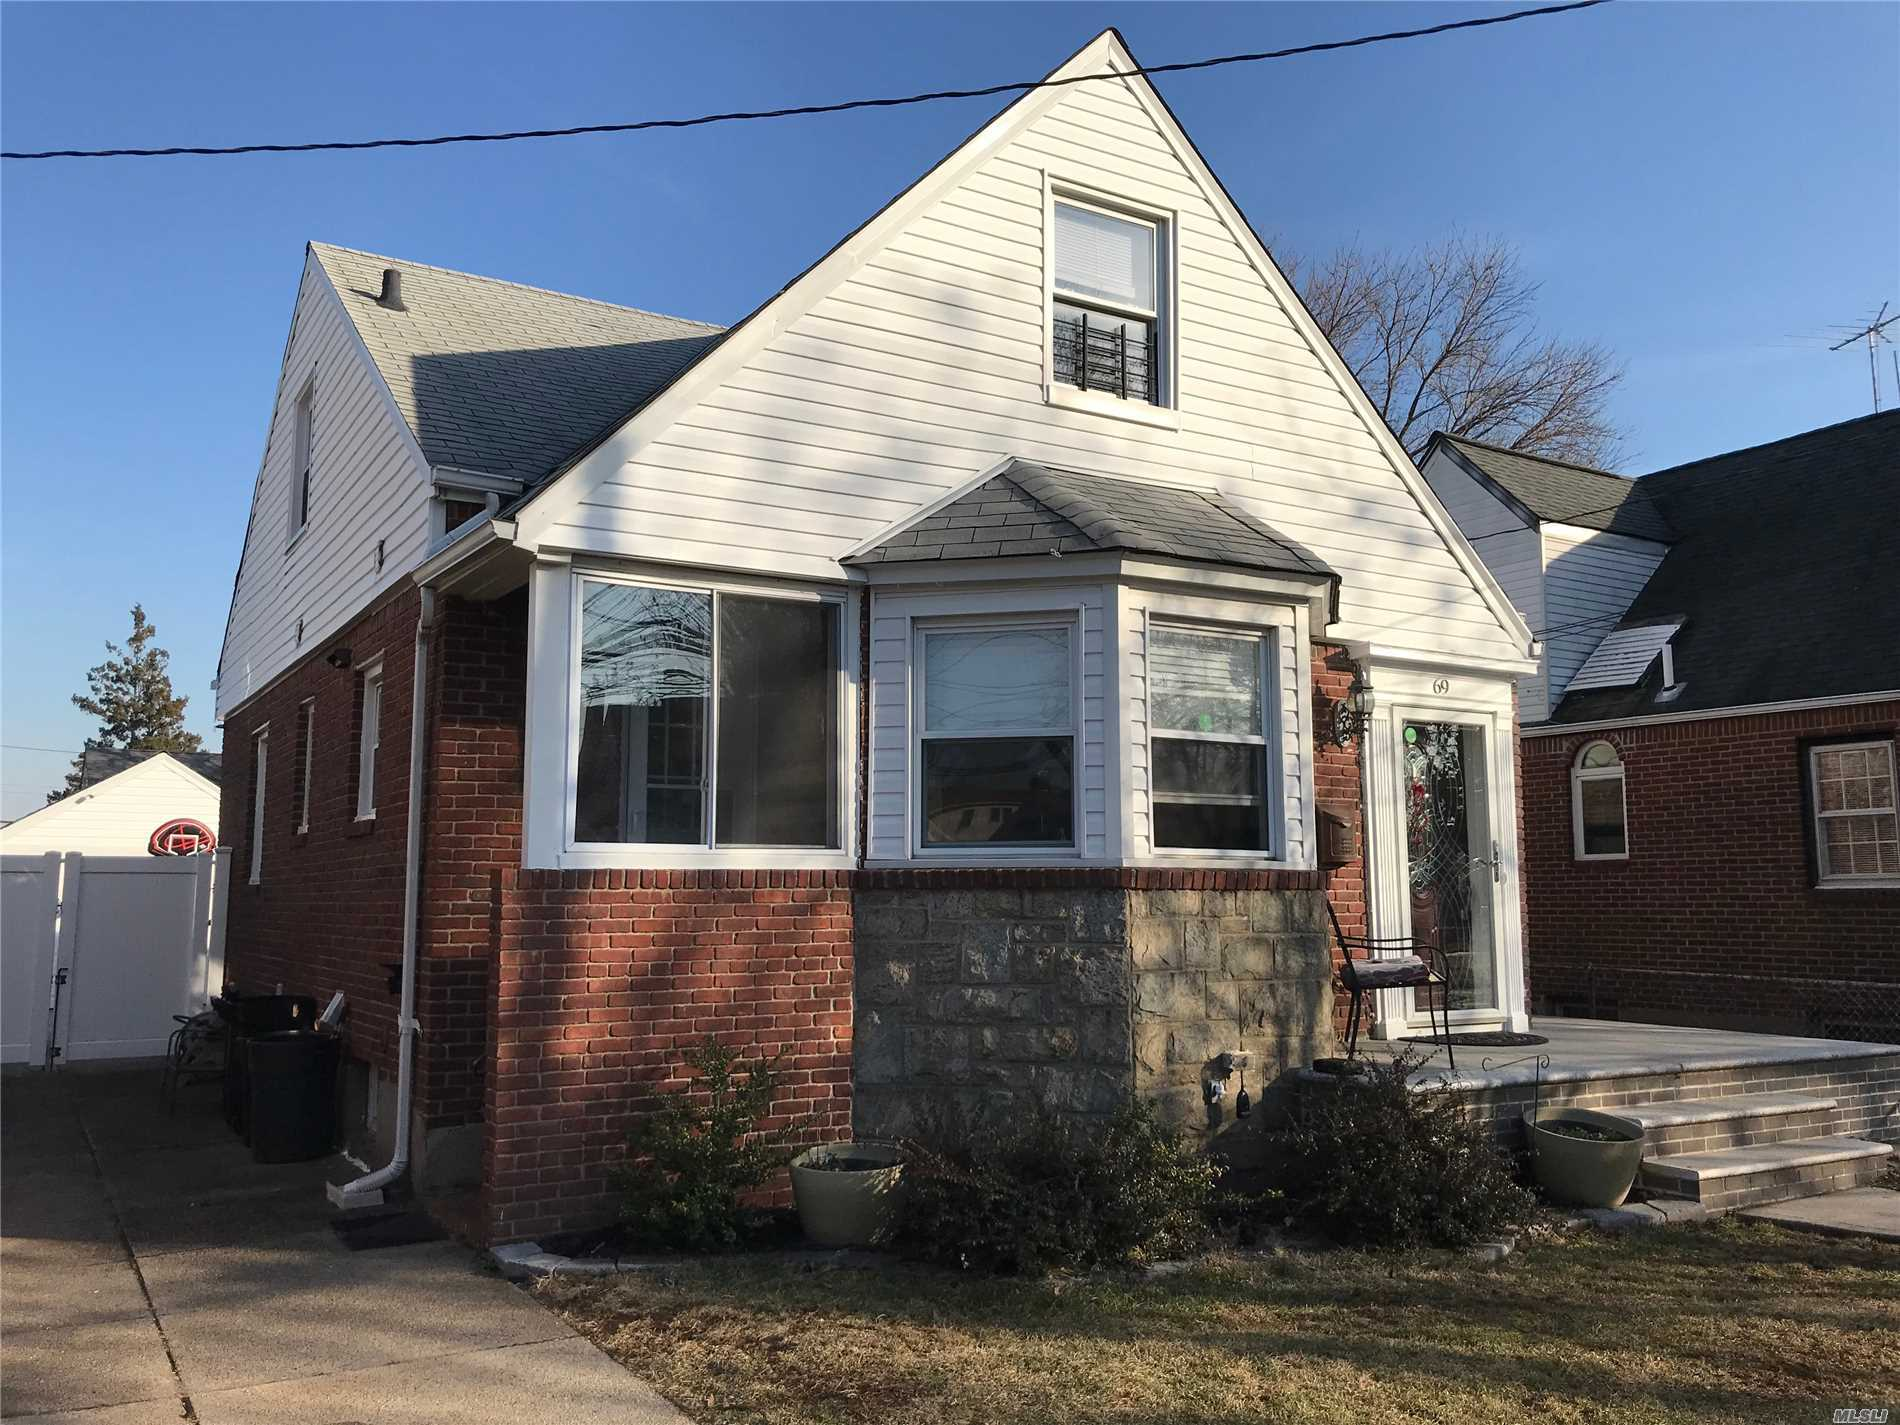 Charming Tudor Cape In The Rath Park Section Of Franklin Square With Great Proximity To All. Features Updated Kitchen W/New Appliances & 2 Updated Baths. New Converted Gas Heat And Hot Water And Electric. Hardwood Floors , Finished Basement And More...New To The Market.